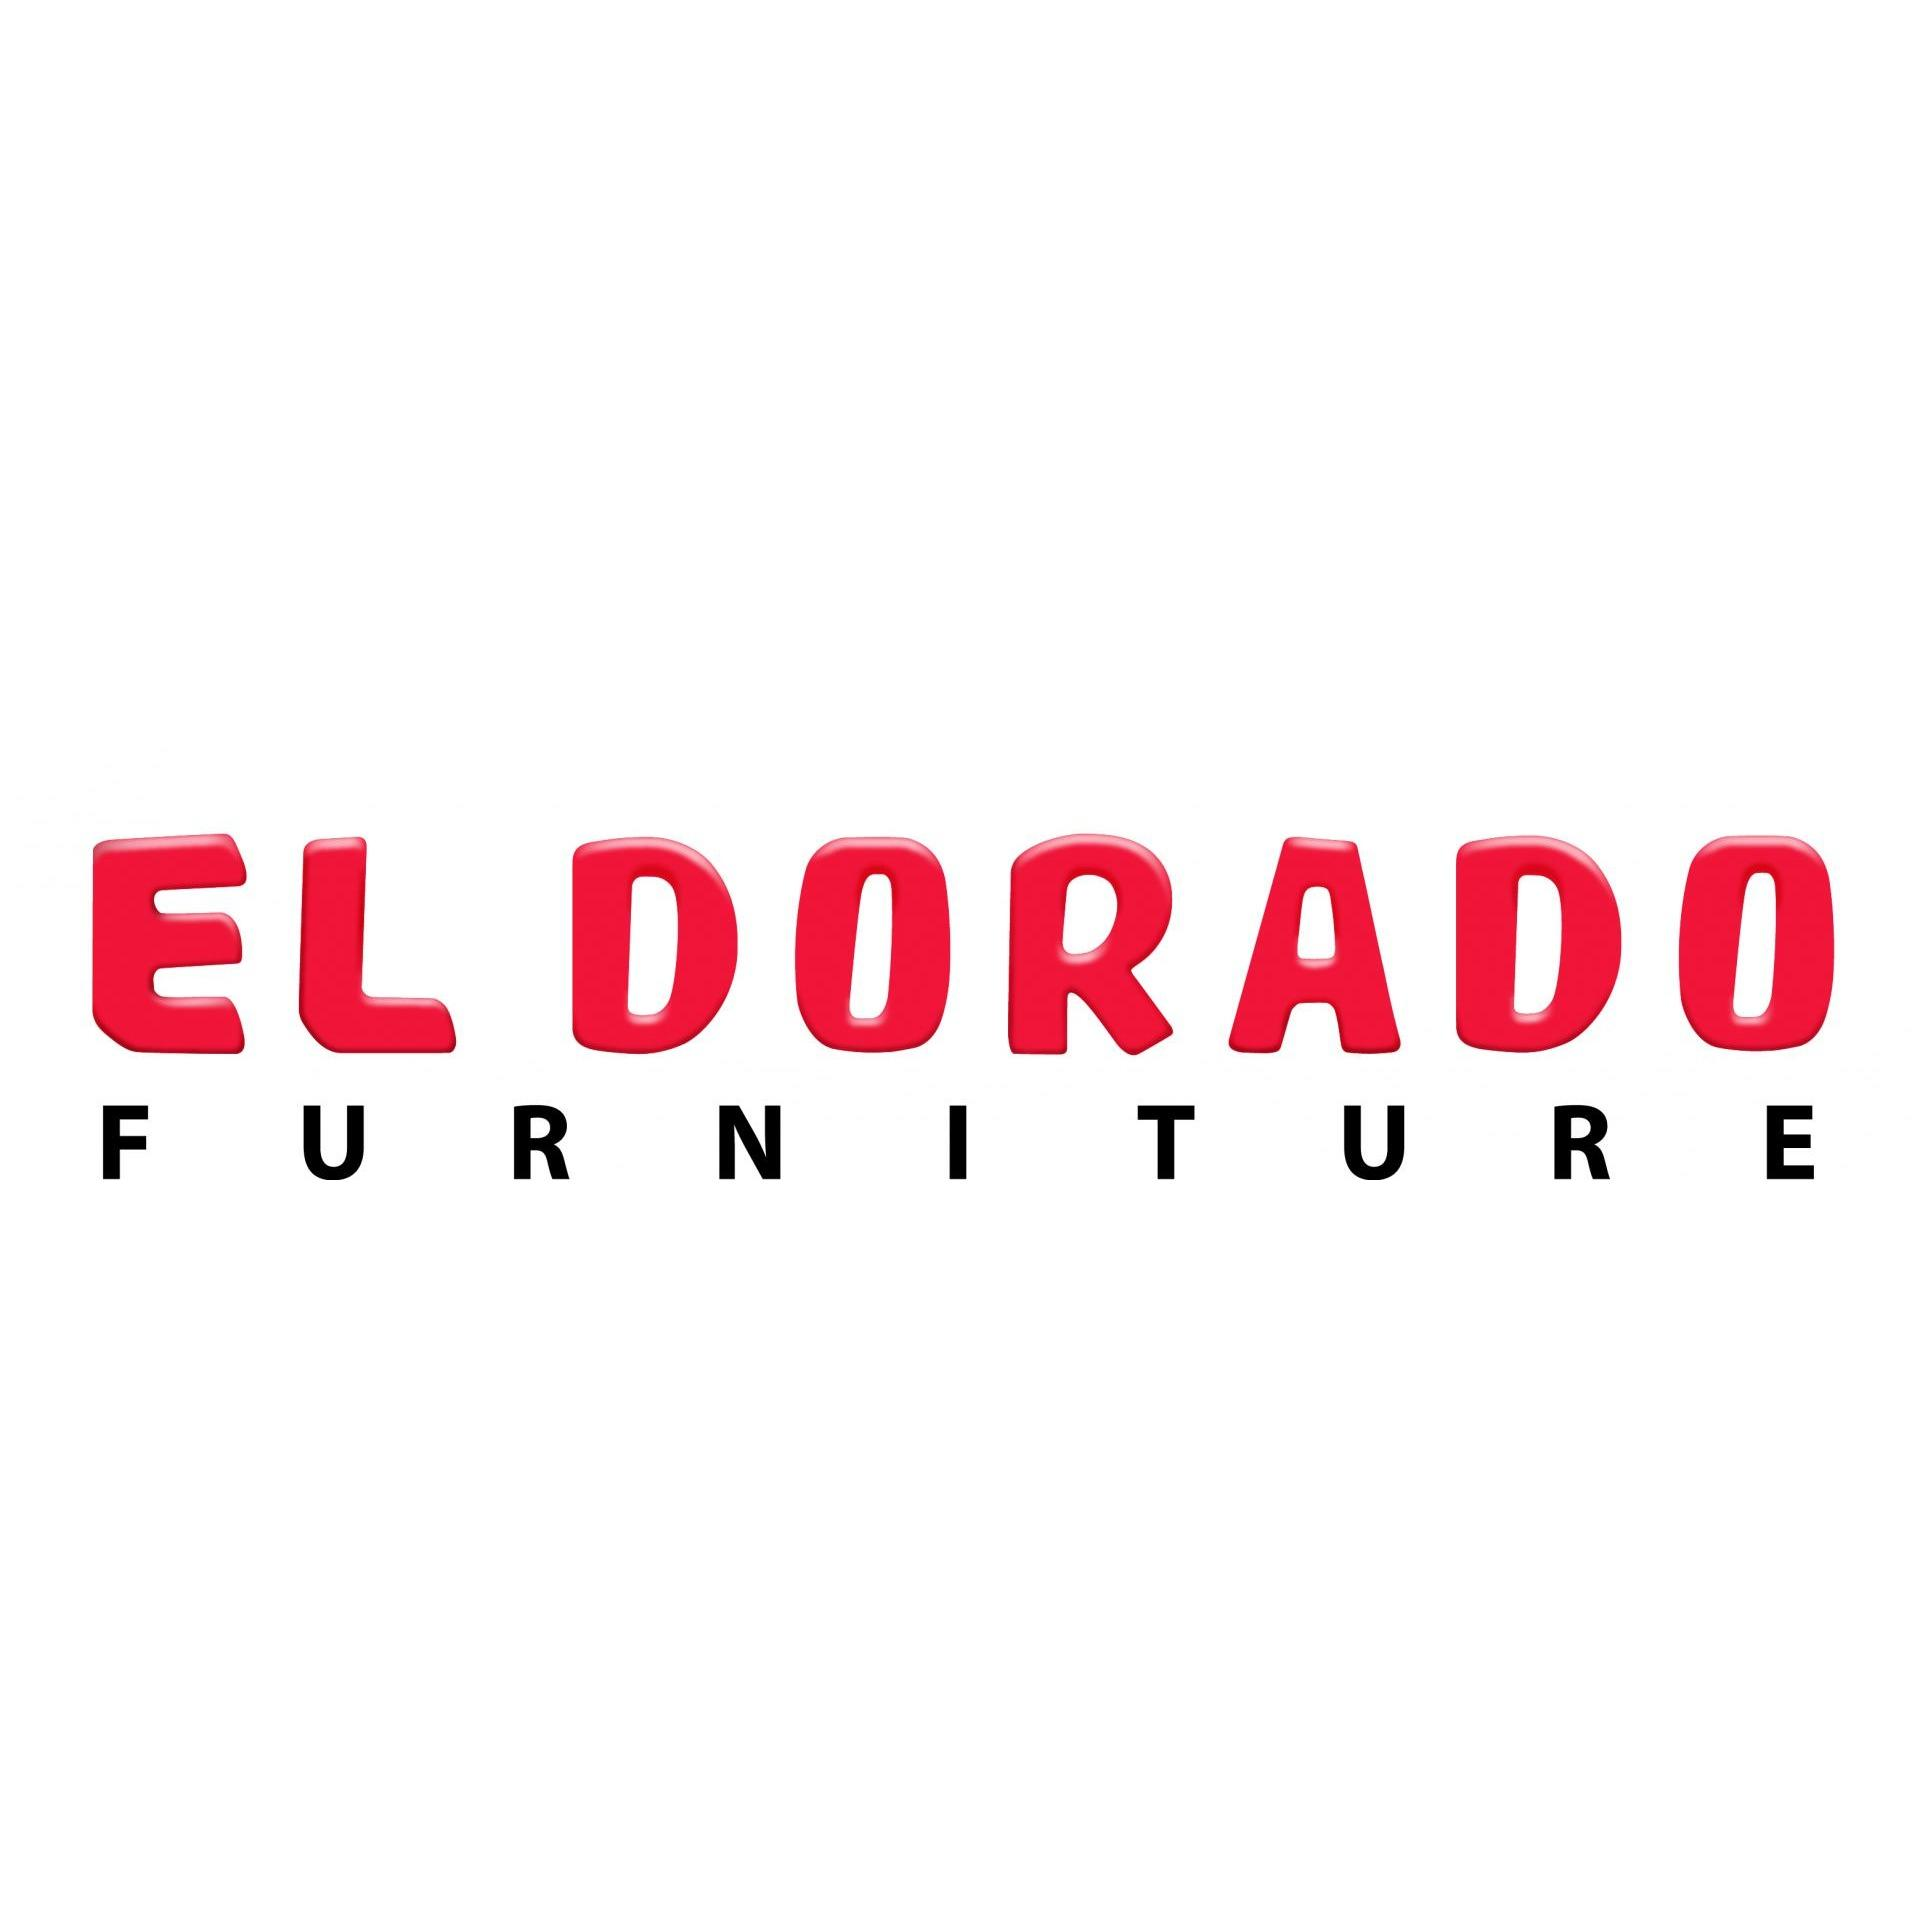 El Dorado Furniture - Palmetto Boulevard image 14